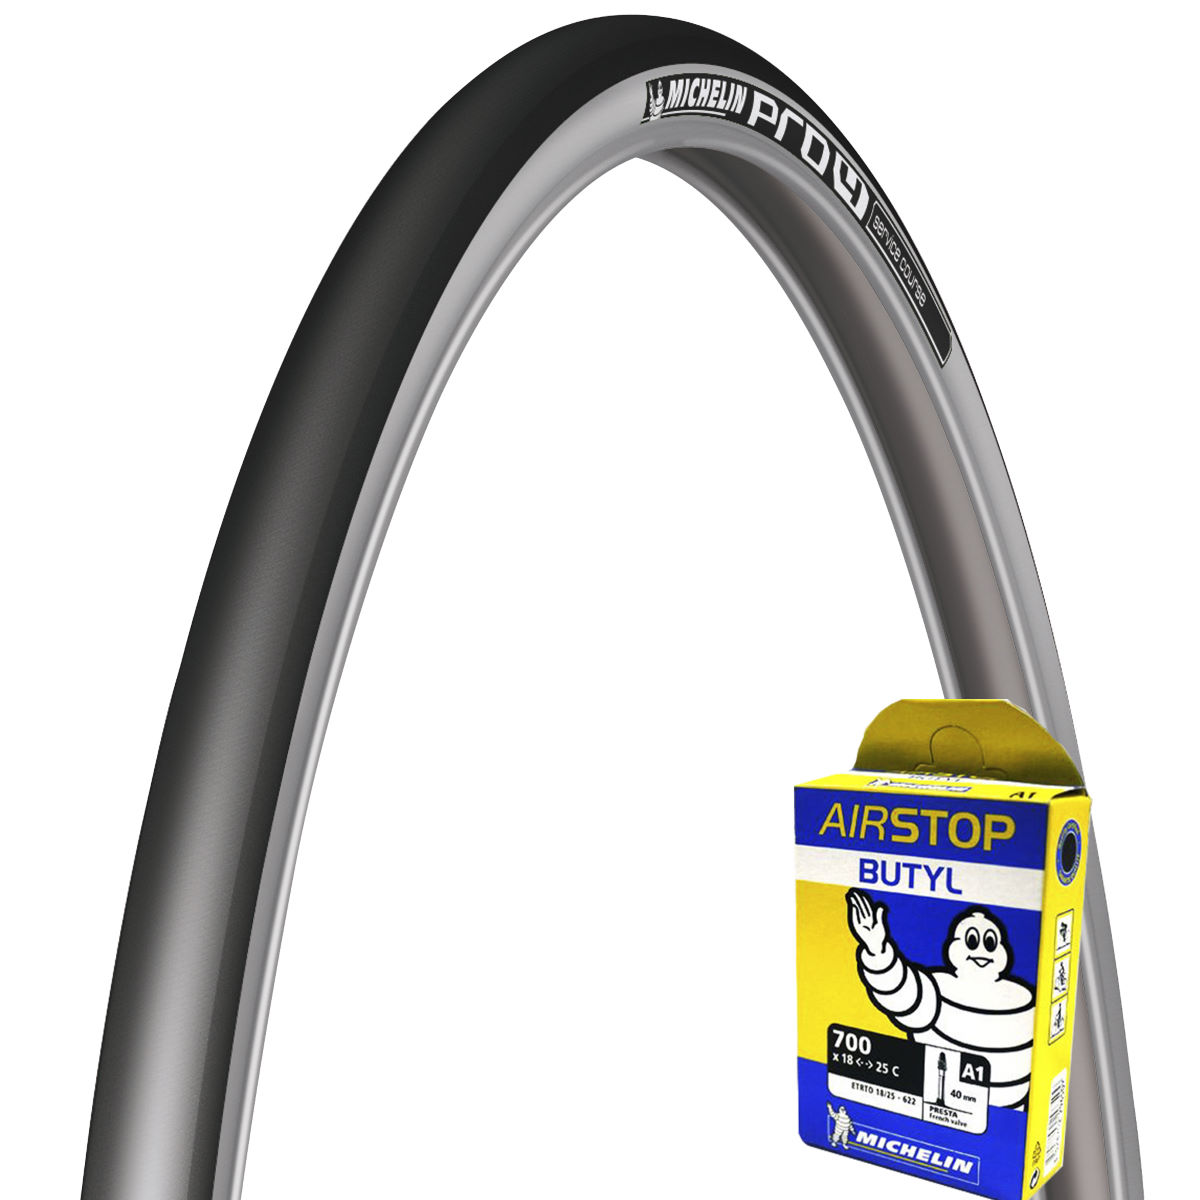 Michelin Pro 4 Service Course Silver 23c Tyre & Free Tube   Tyres